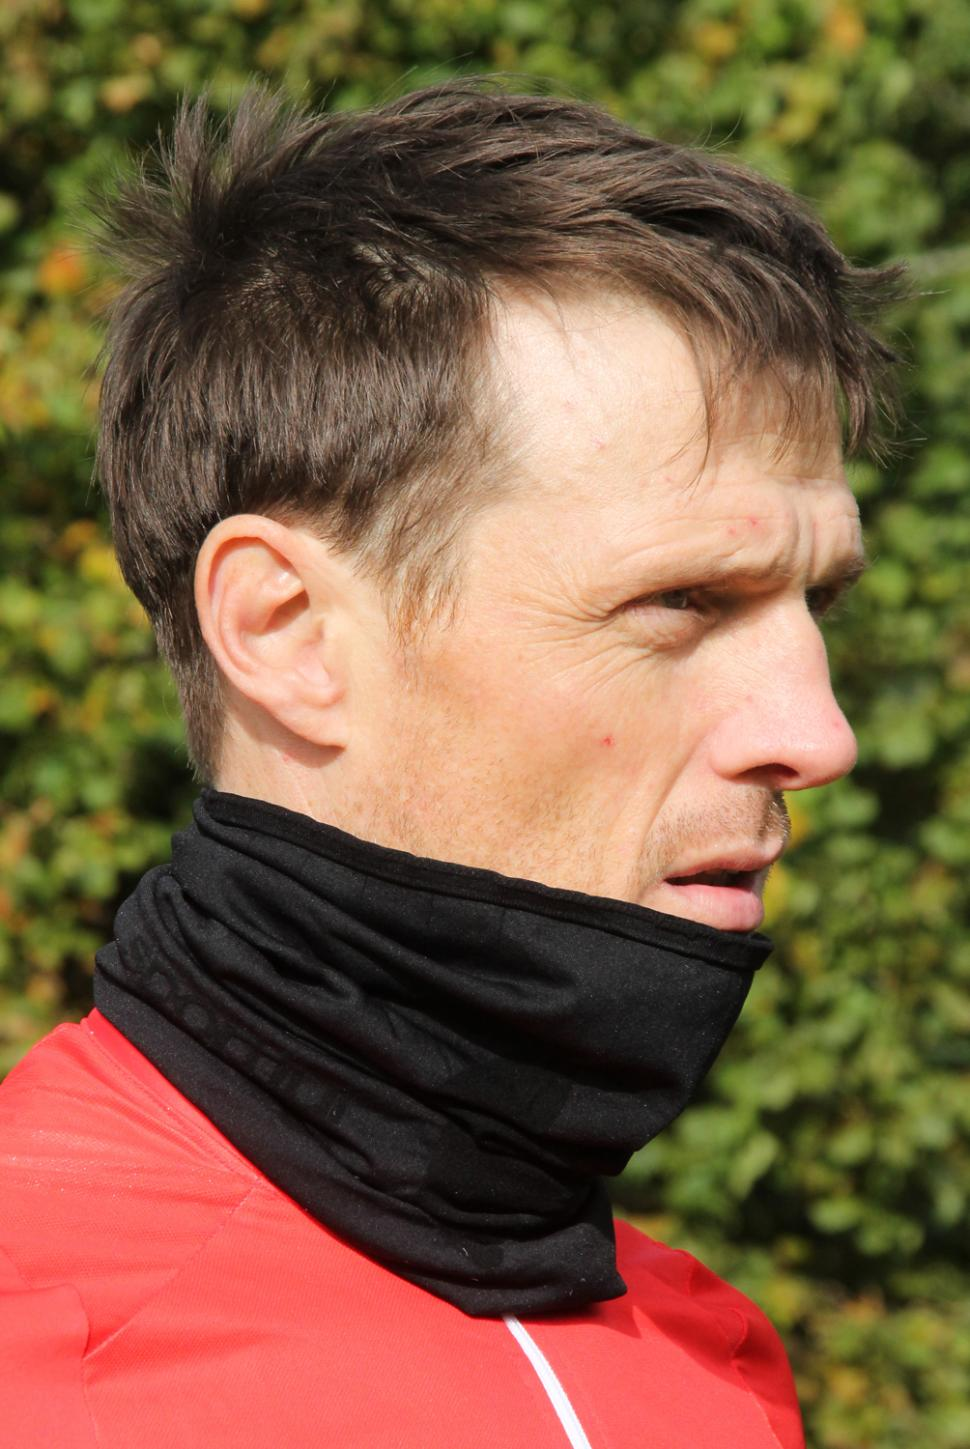 Sportful Second Skin Neck Warmer